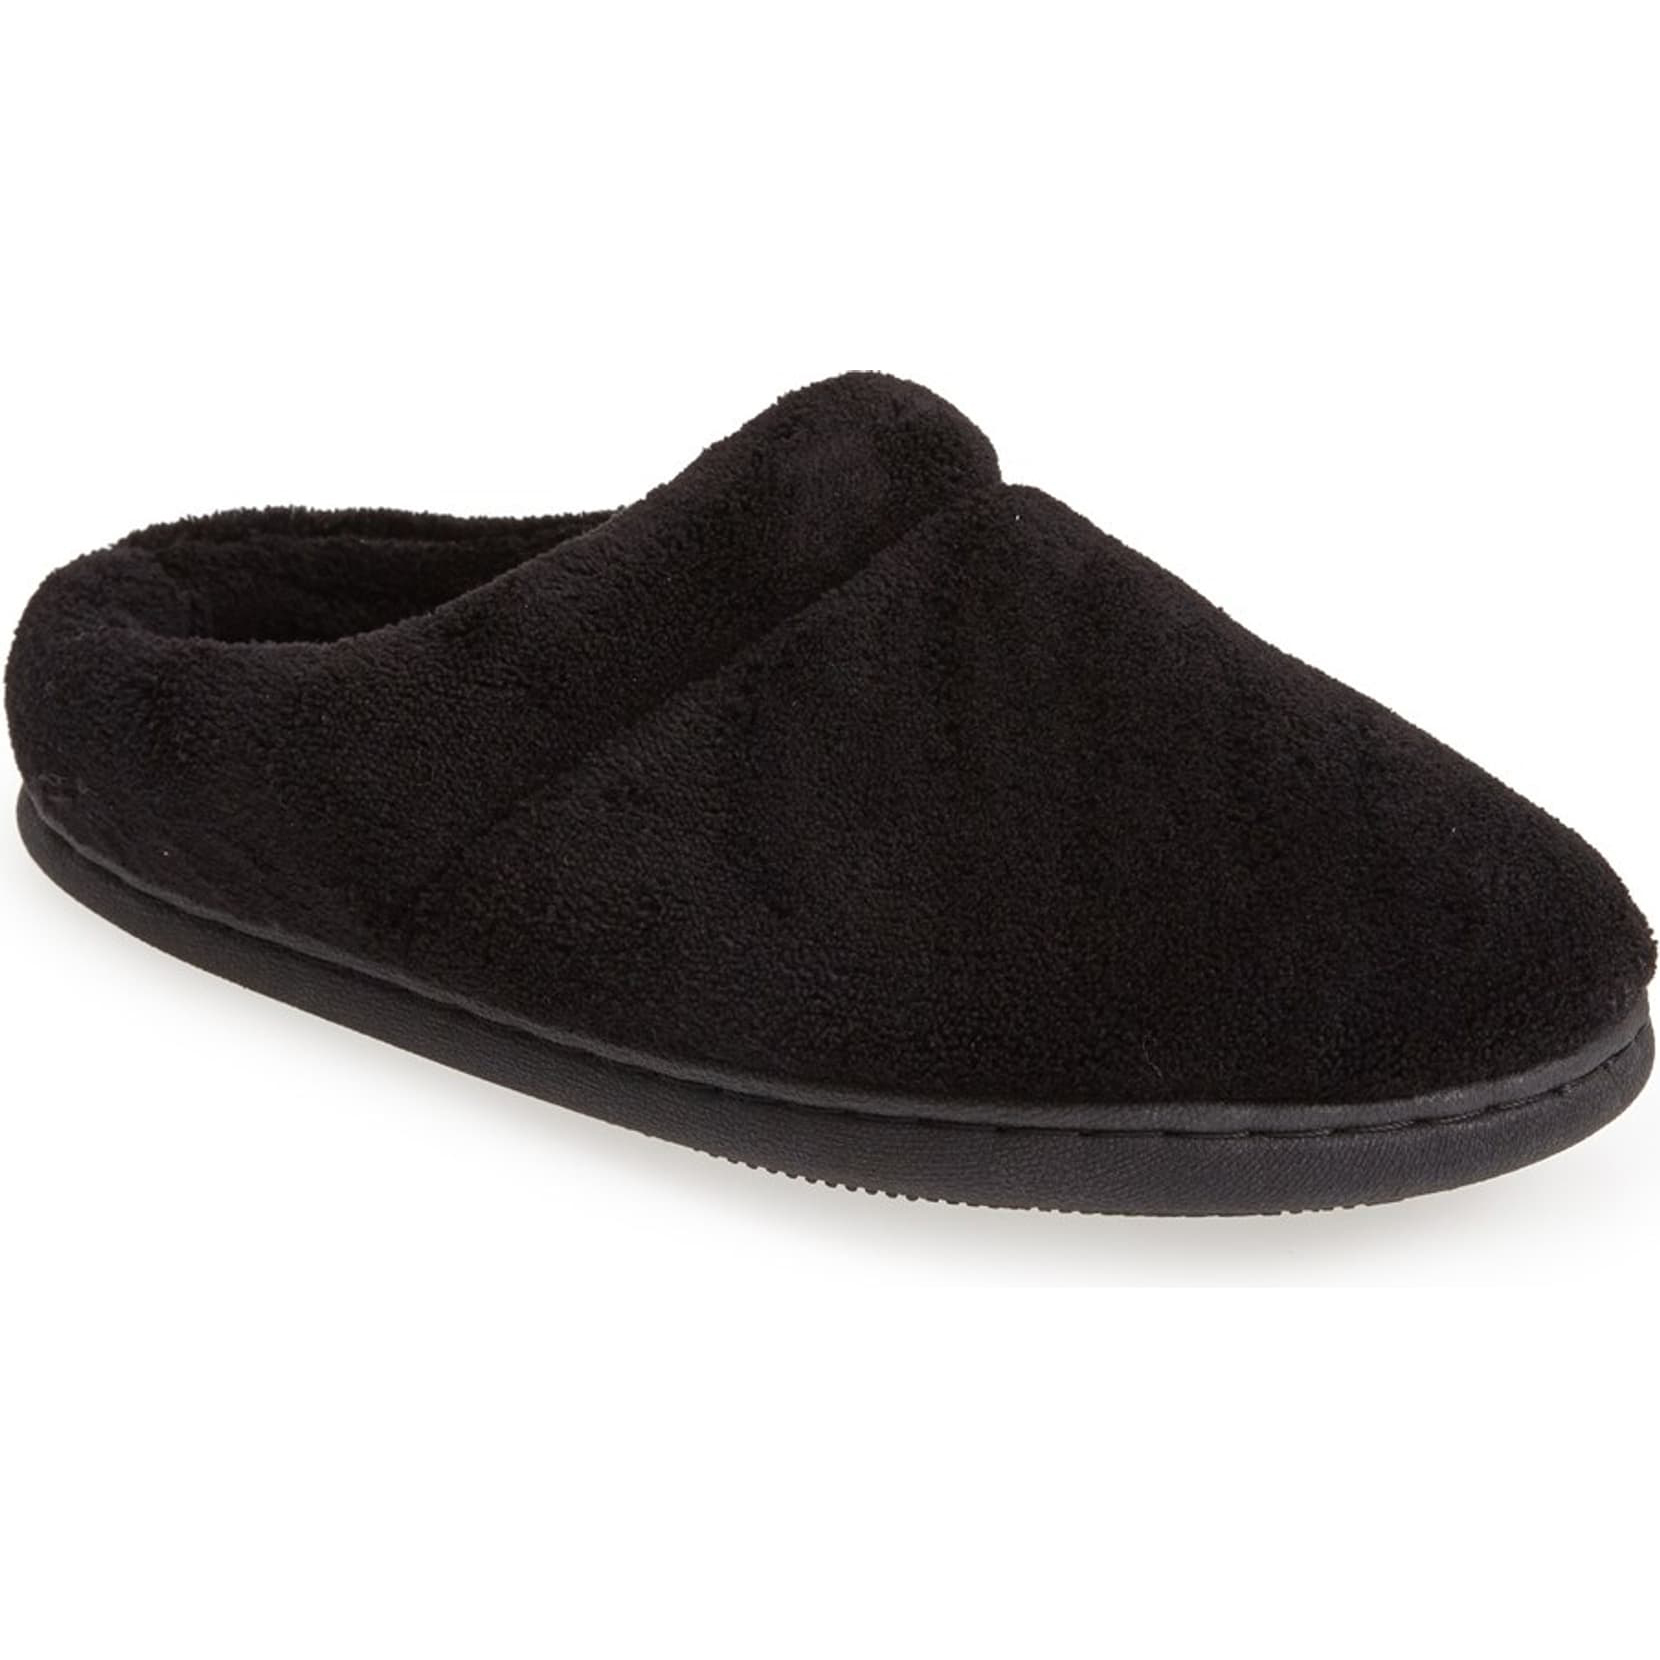 Tempur-Pedic 'Windsock' Slipper